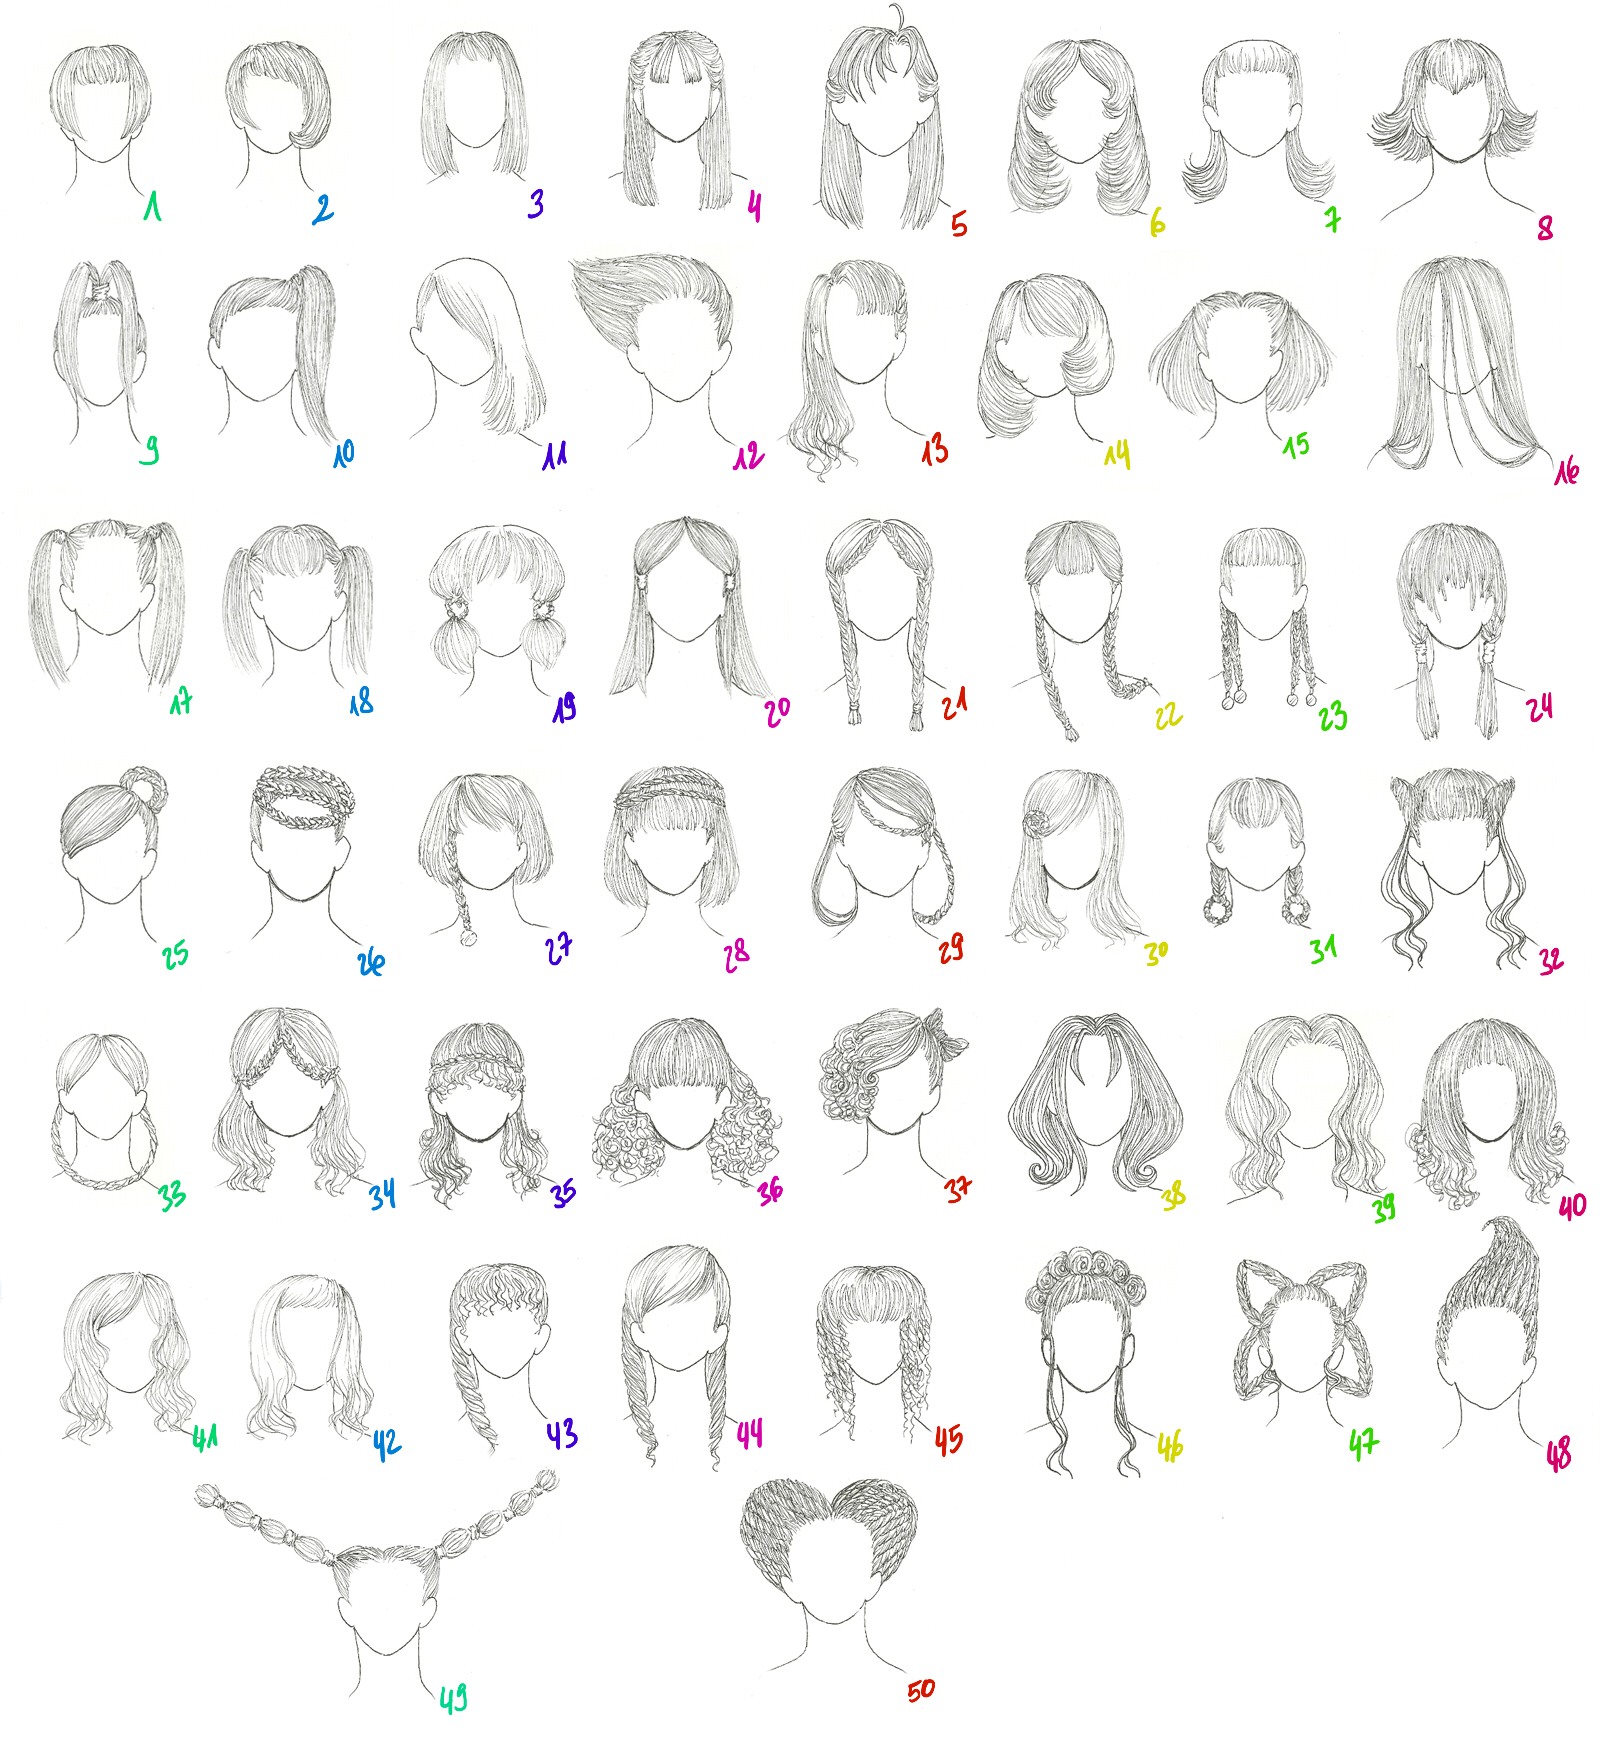 Female Anime Hairstyles By AnaisKalinin On DeviantArt - Anime hairstyle names